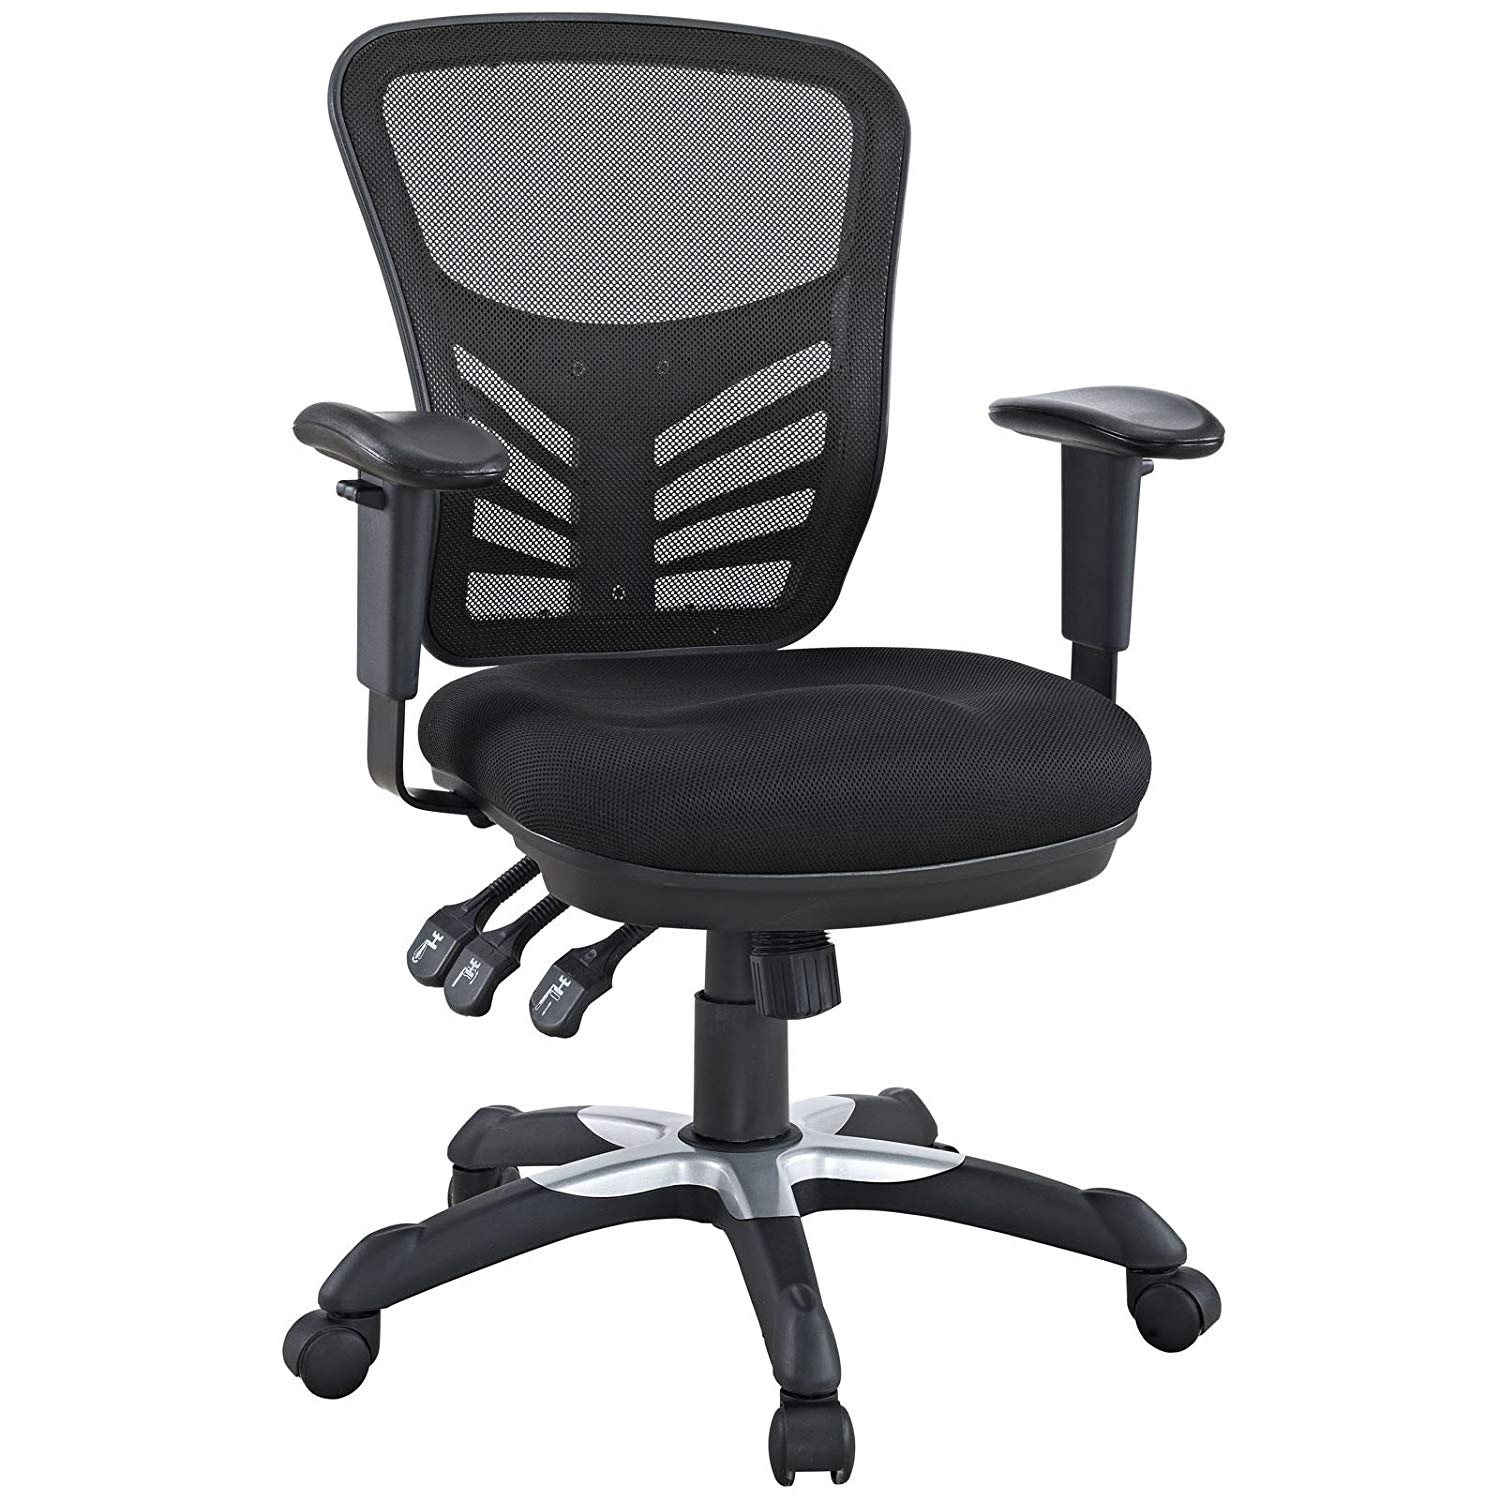 Modway Articulate Ergonomic Mesh Office/Computer Chair